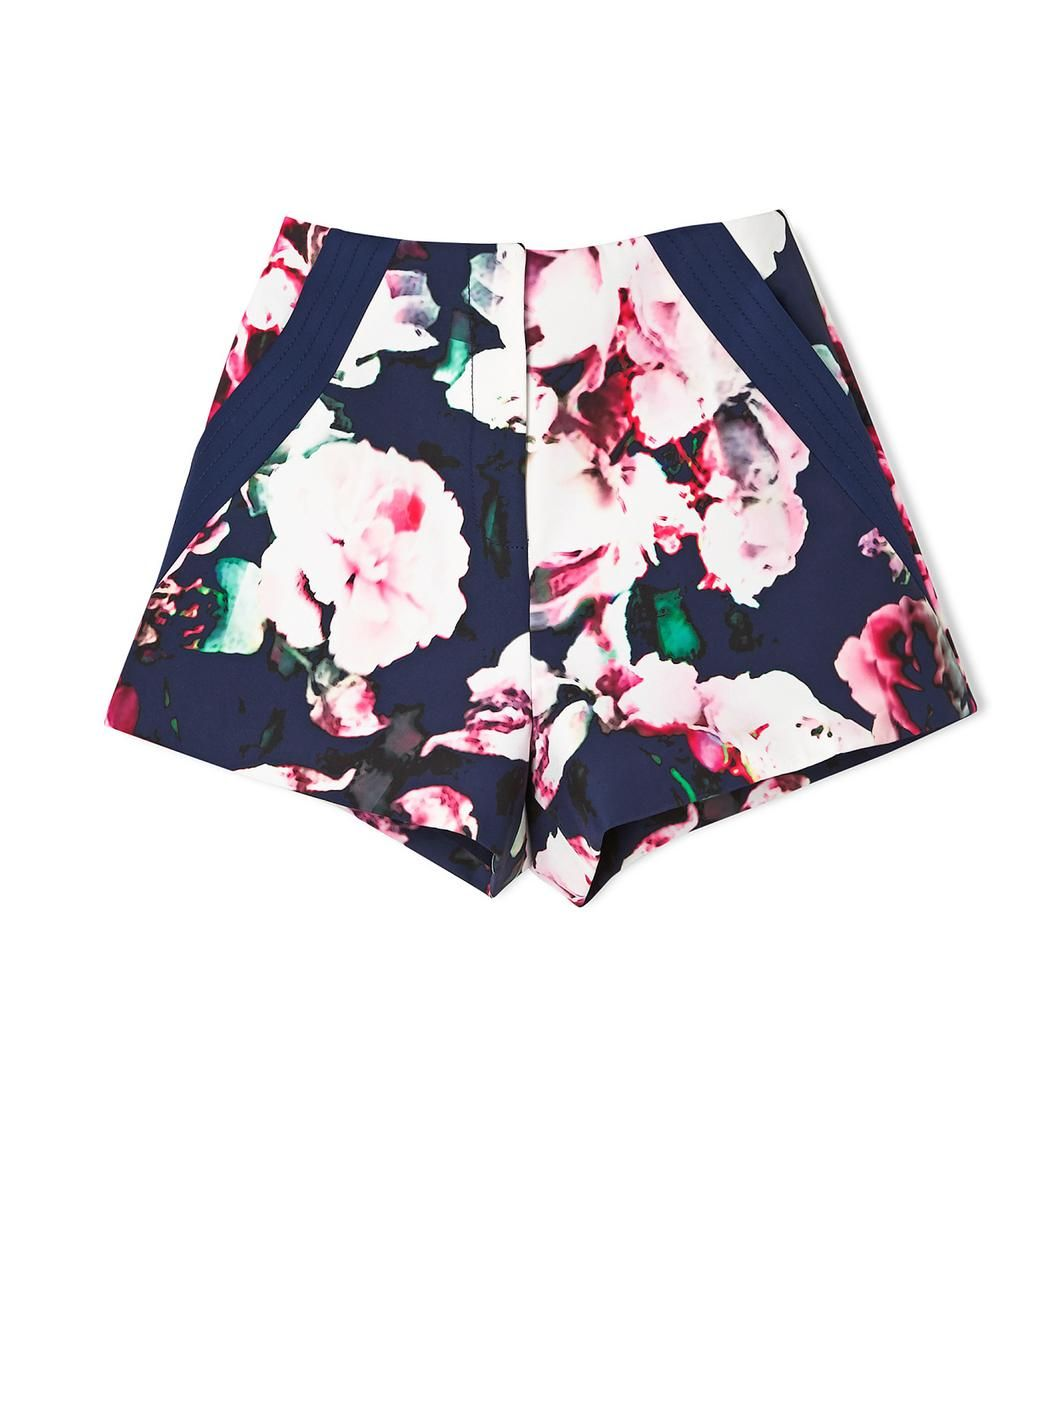 Ready To Go Floral Shorts - Navy/Multi, http://www.veryexclusive.co.uk/finders-keepers-ready-to-go-floral-shorts-navymulti/1458122588.prd